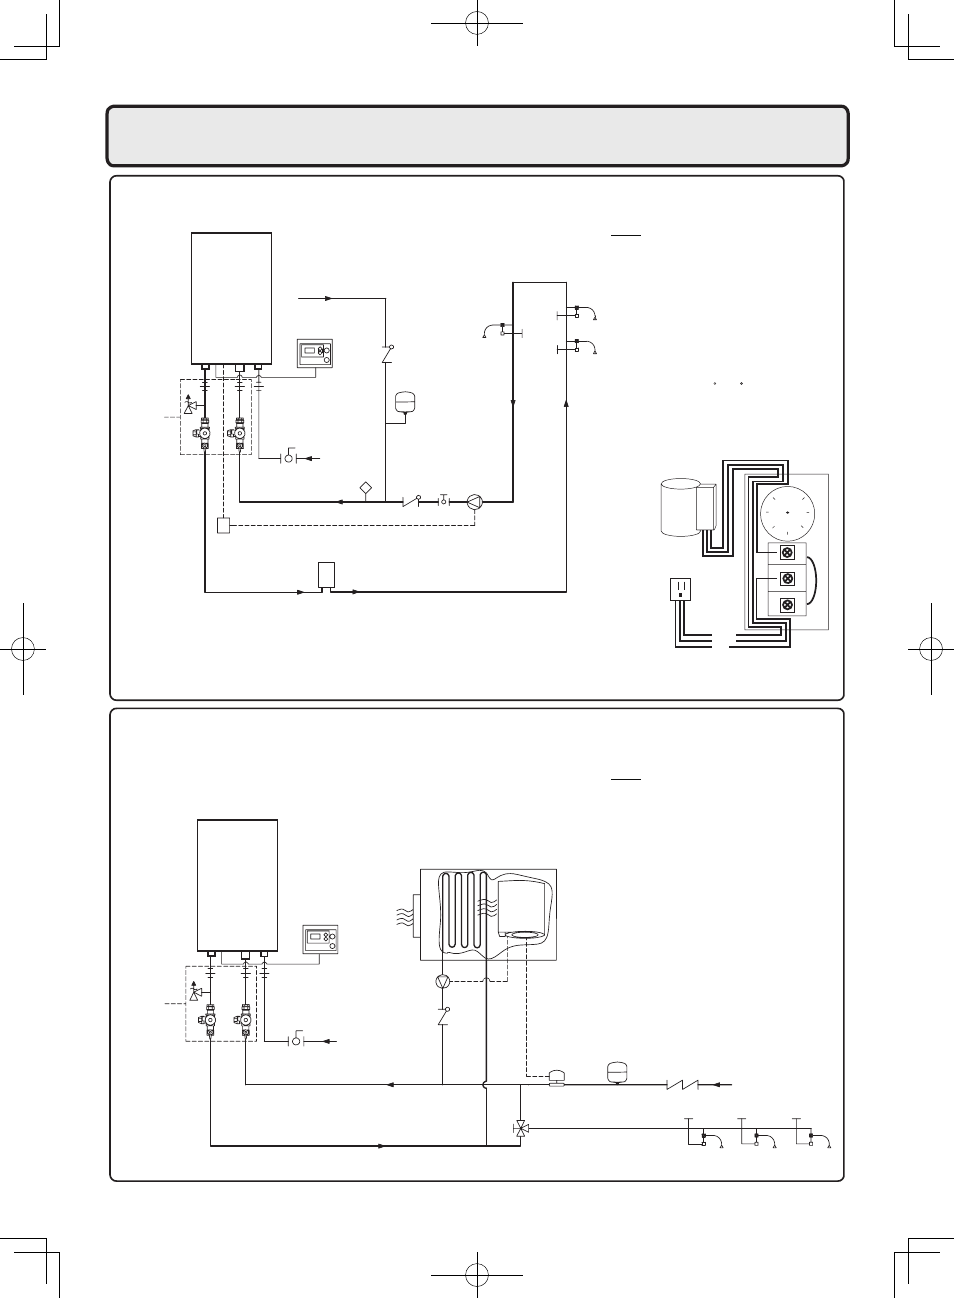 Plumbing Applications John Wood Condensing Jwc111 Sv Manuel D Honeywell Aquastat Wiring Dutilisation Page 22 68